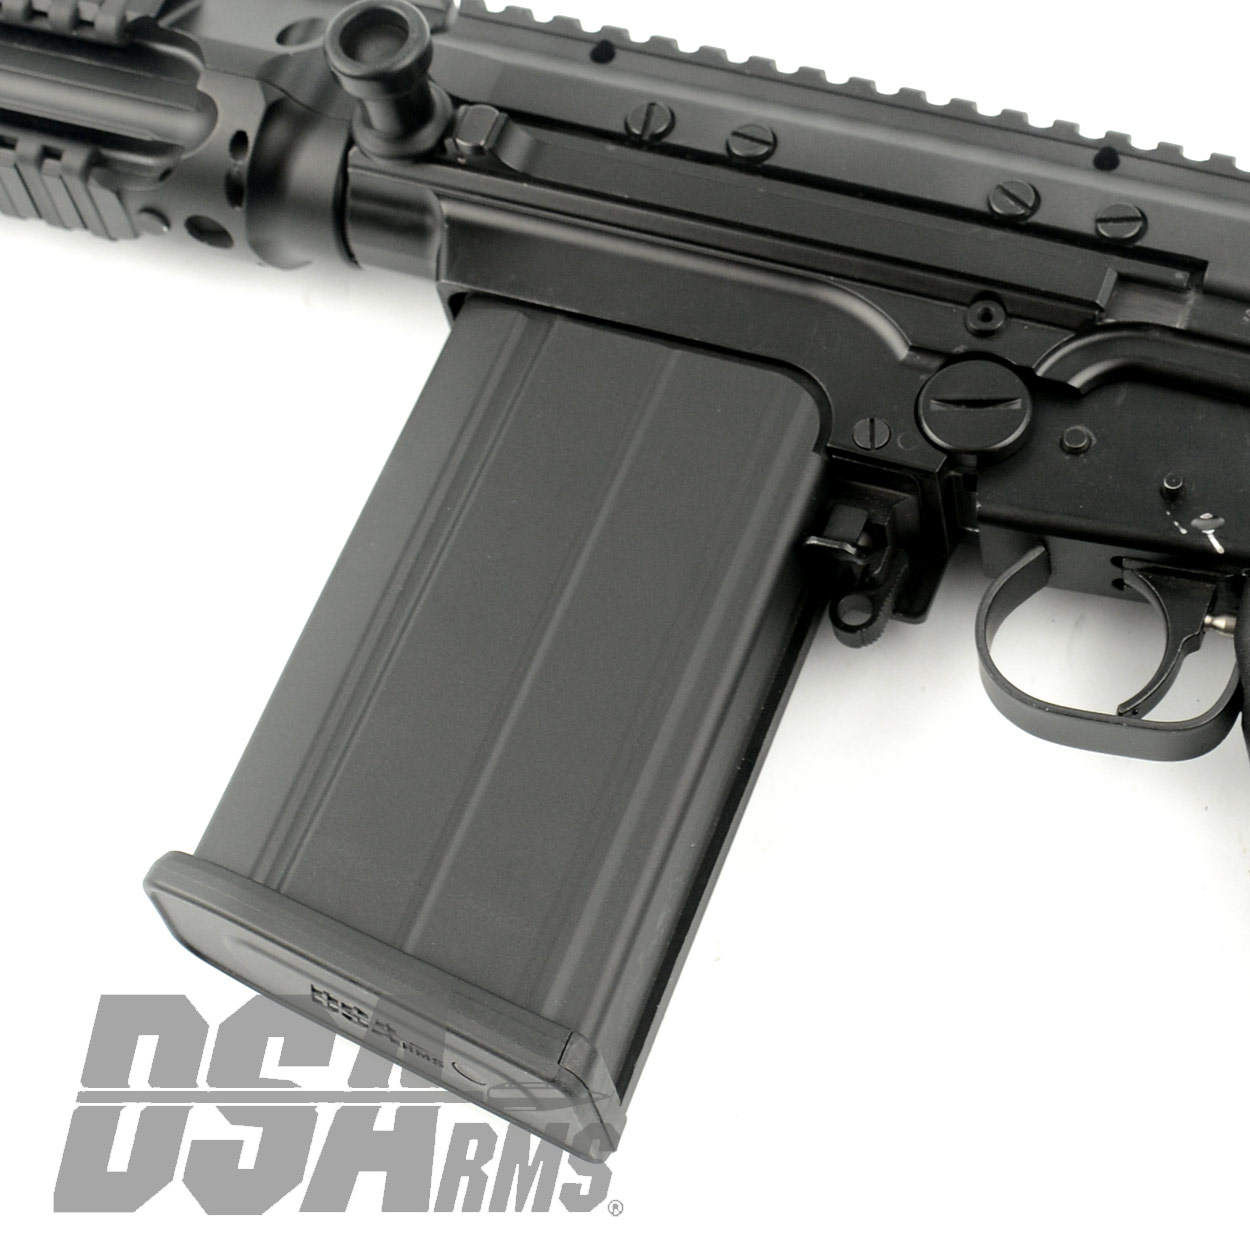 DS ARMS DEBUTS NEW FAL SA58 METRIC PATTERN POLYMER MAGS